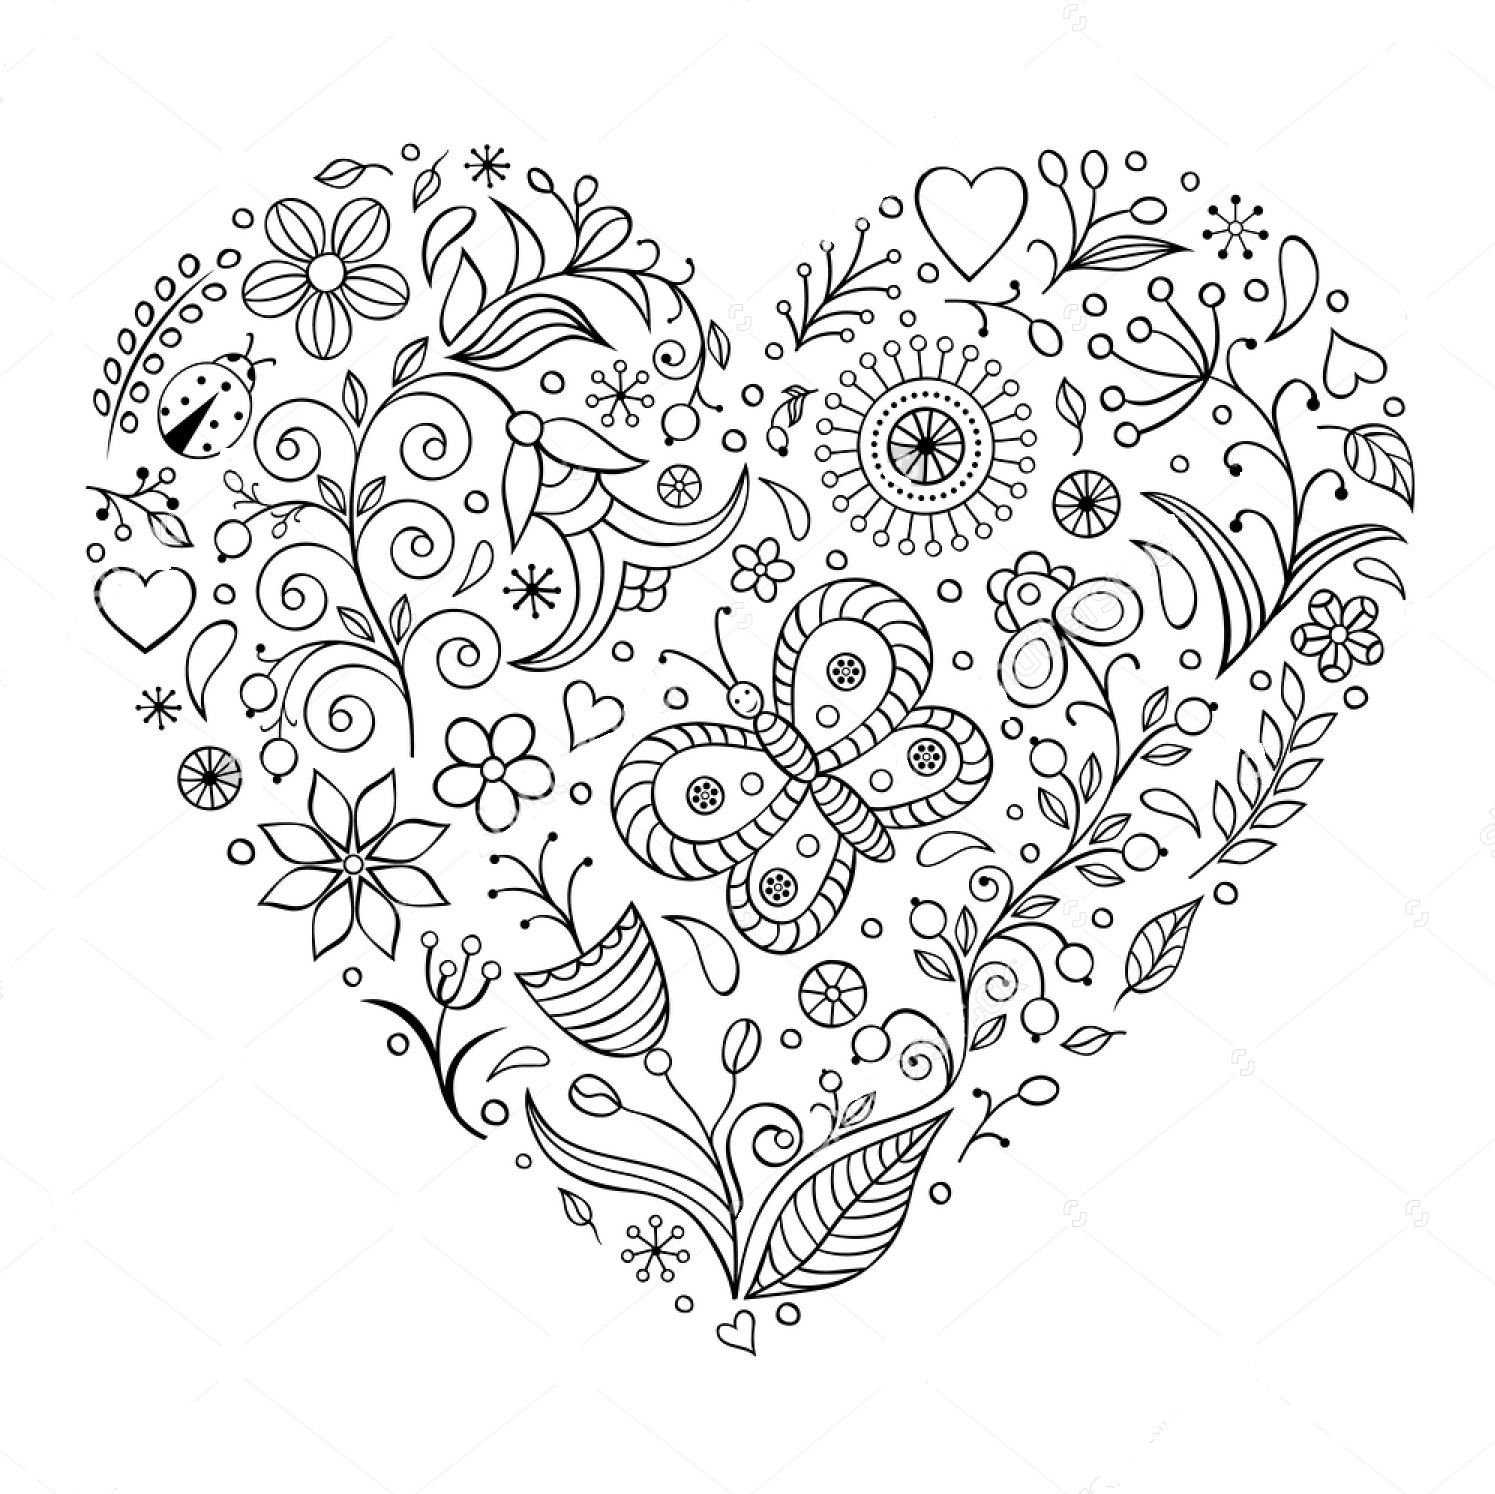 coloring pages for adults heart heart knot to color heart coloring pages adult coloring adults pages heart for coloring